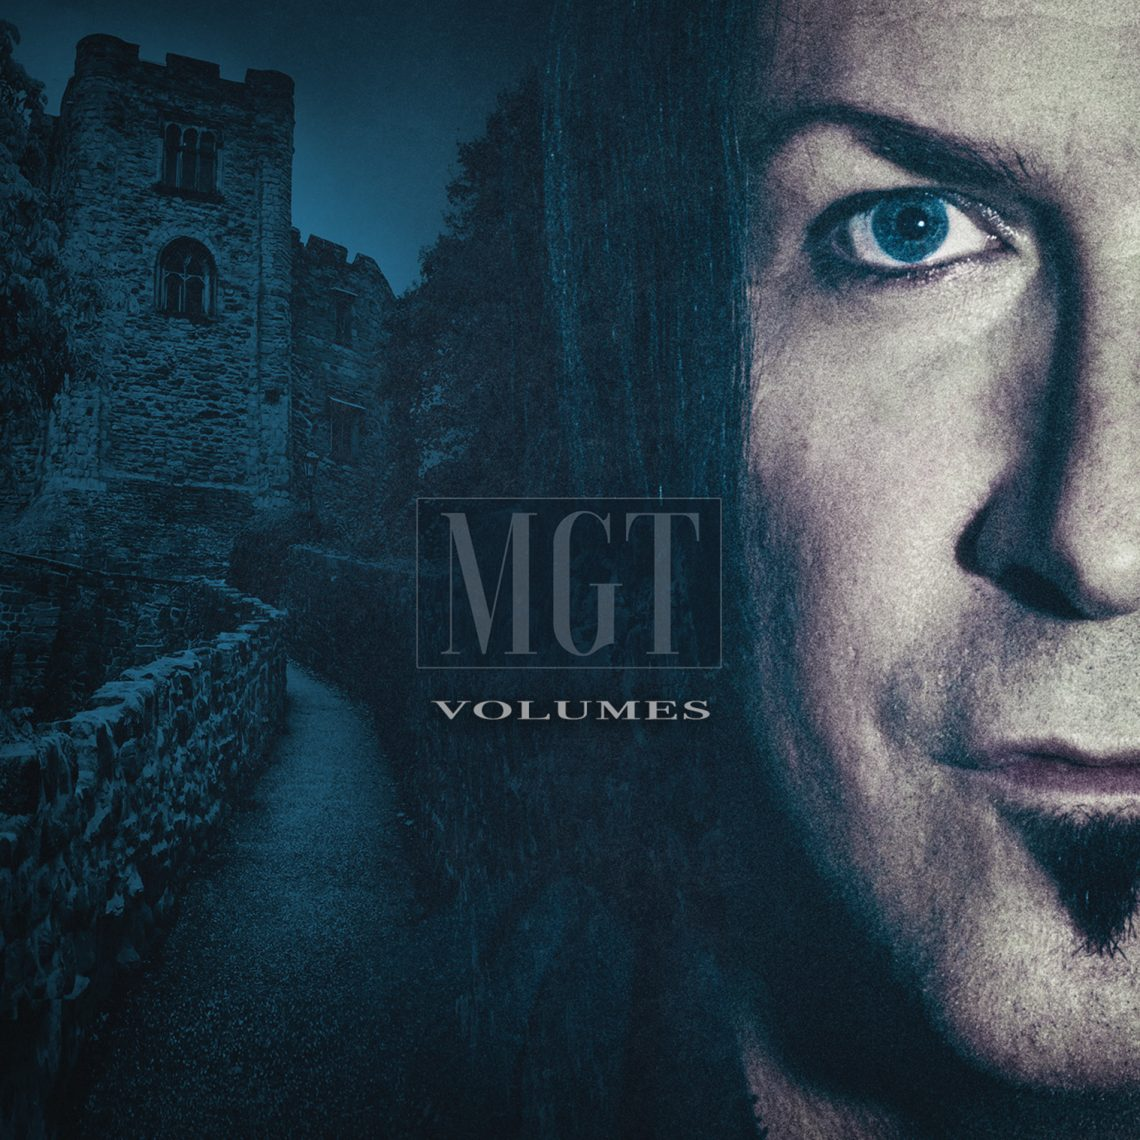 MARK GEMINI THWAITE – Volumes CD Review